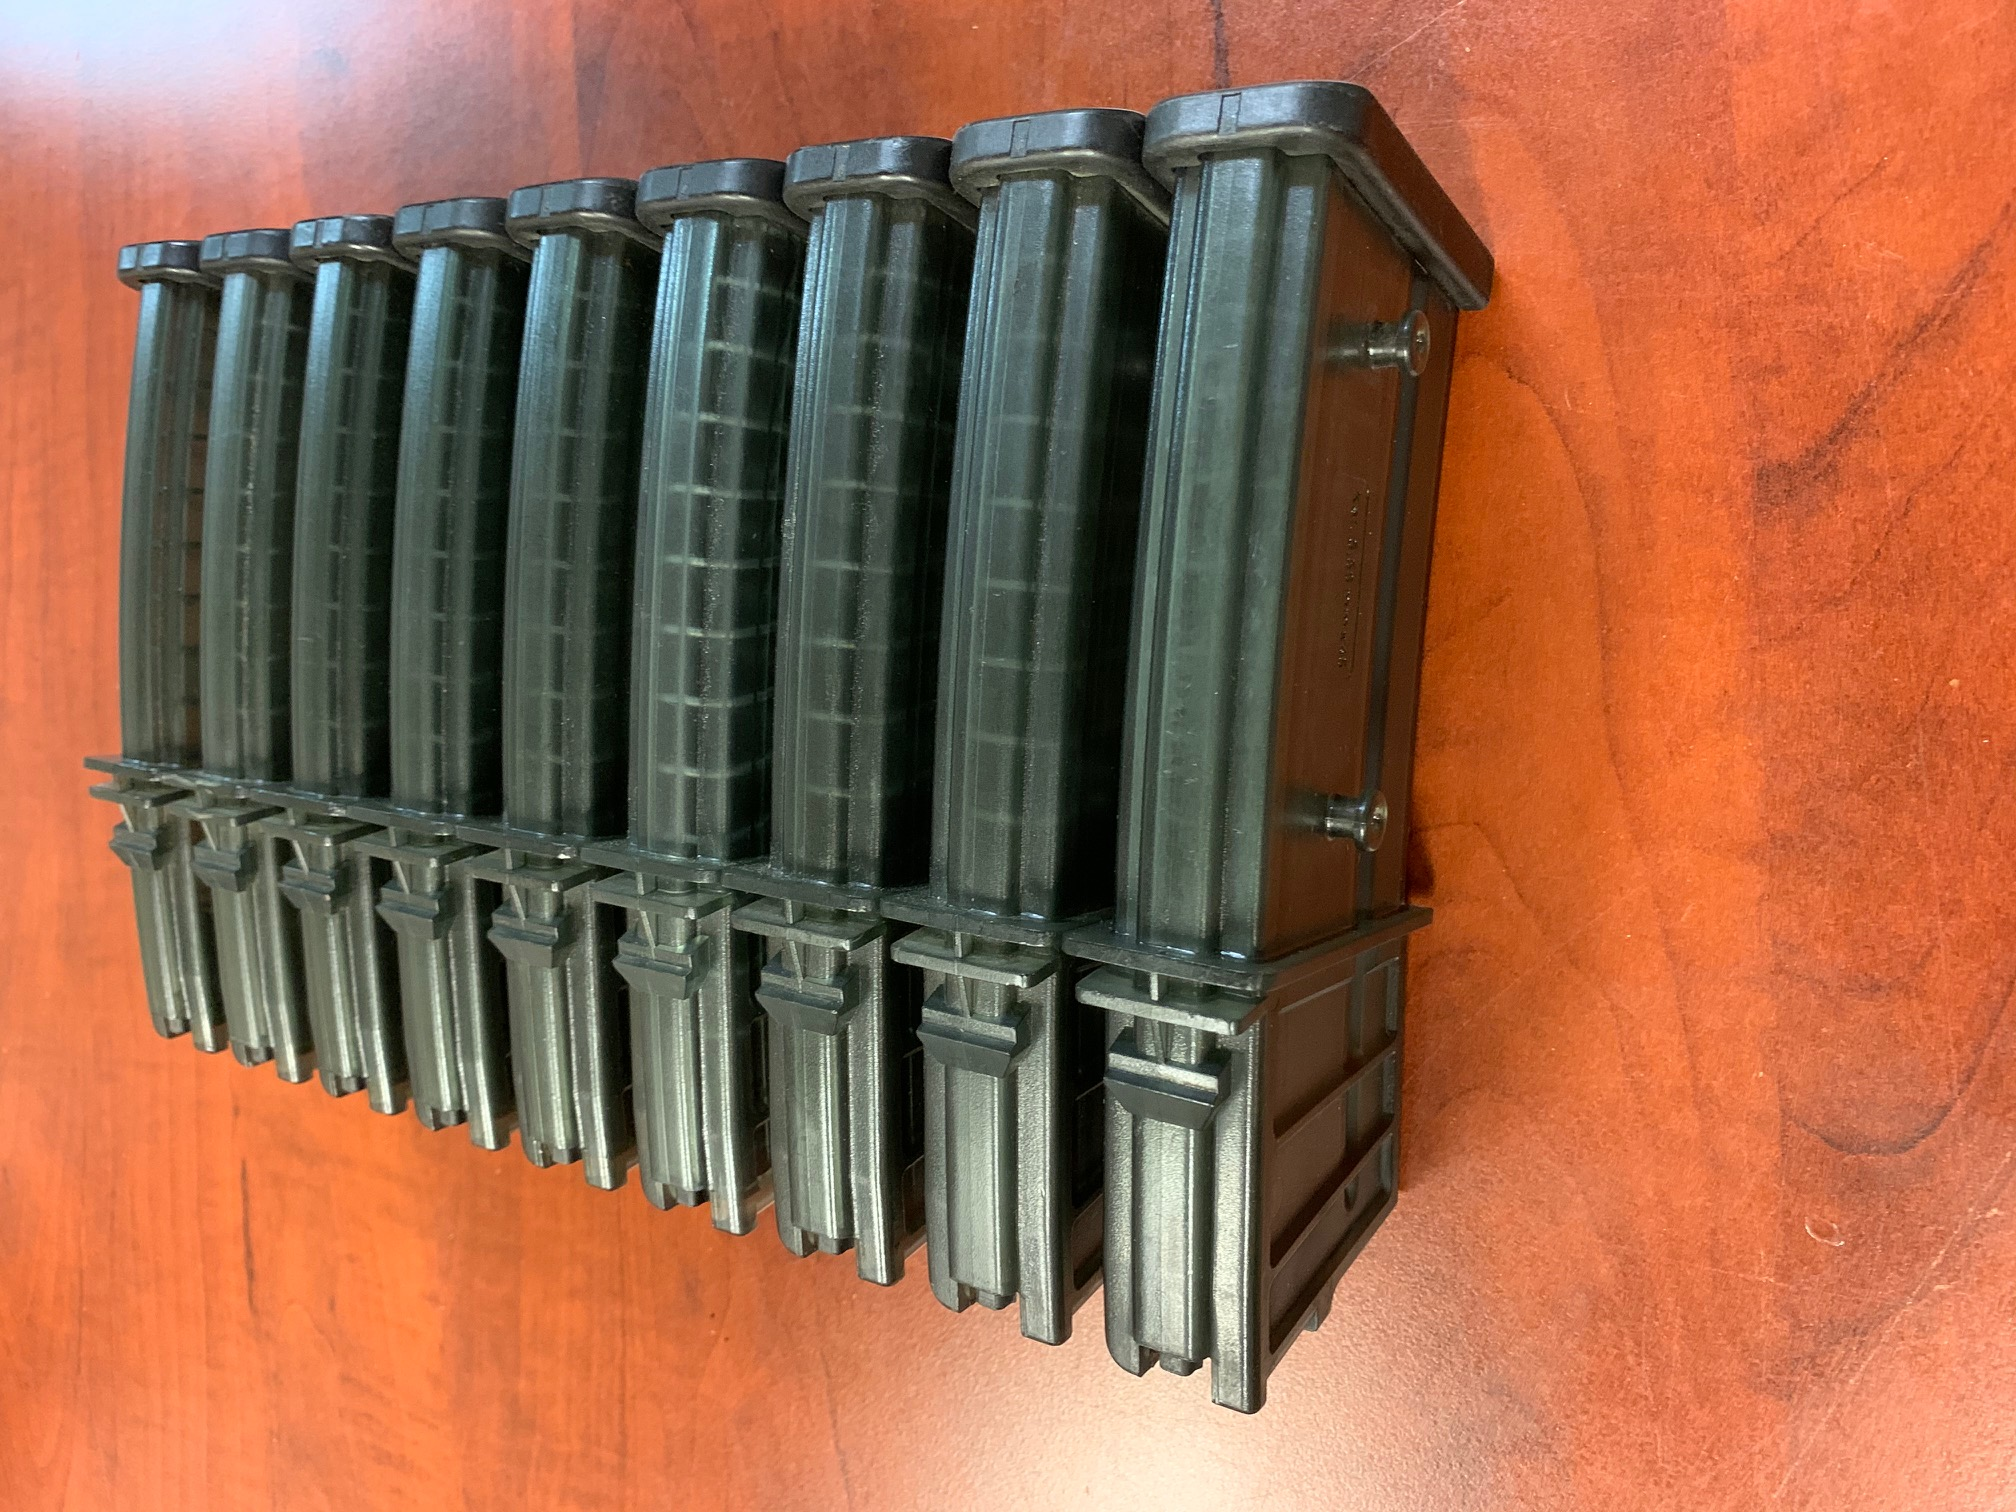 WTS: G36 magazines, MP5 carriers, trigger housings, stocks, pins, parts-img_0562.jpg